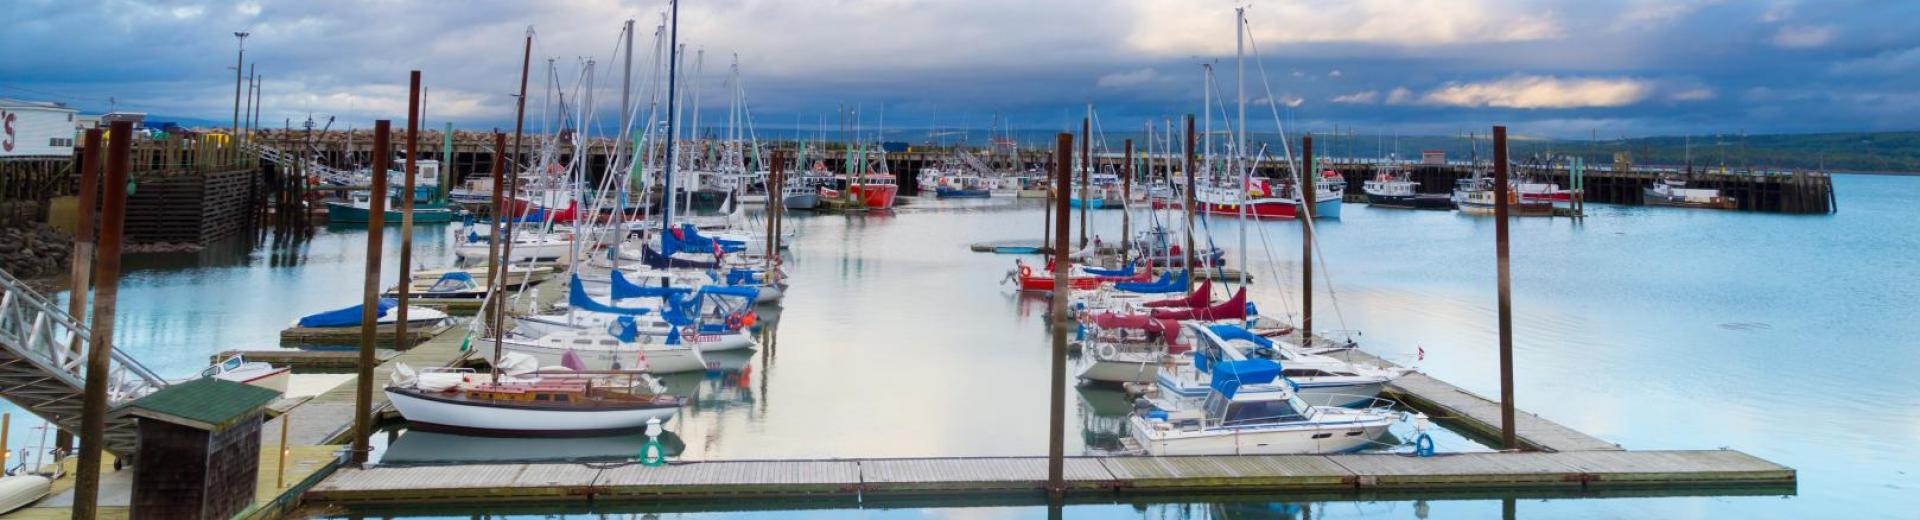 Boats in Digby Harbour